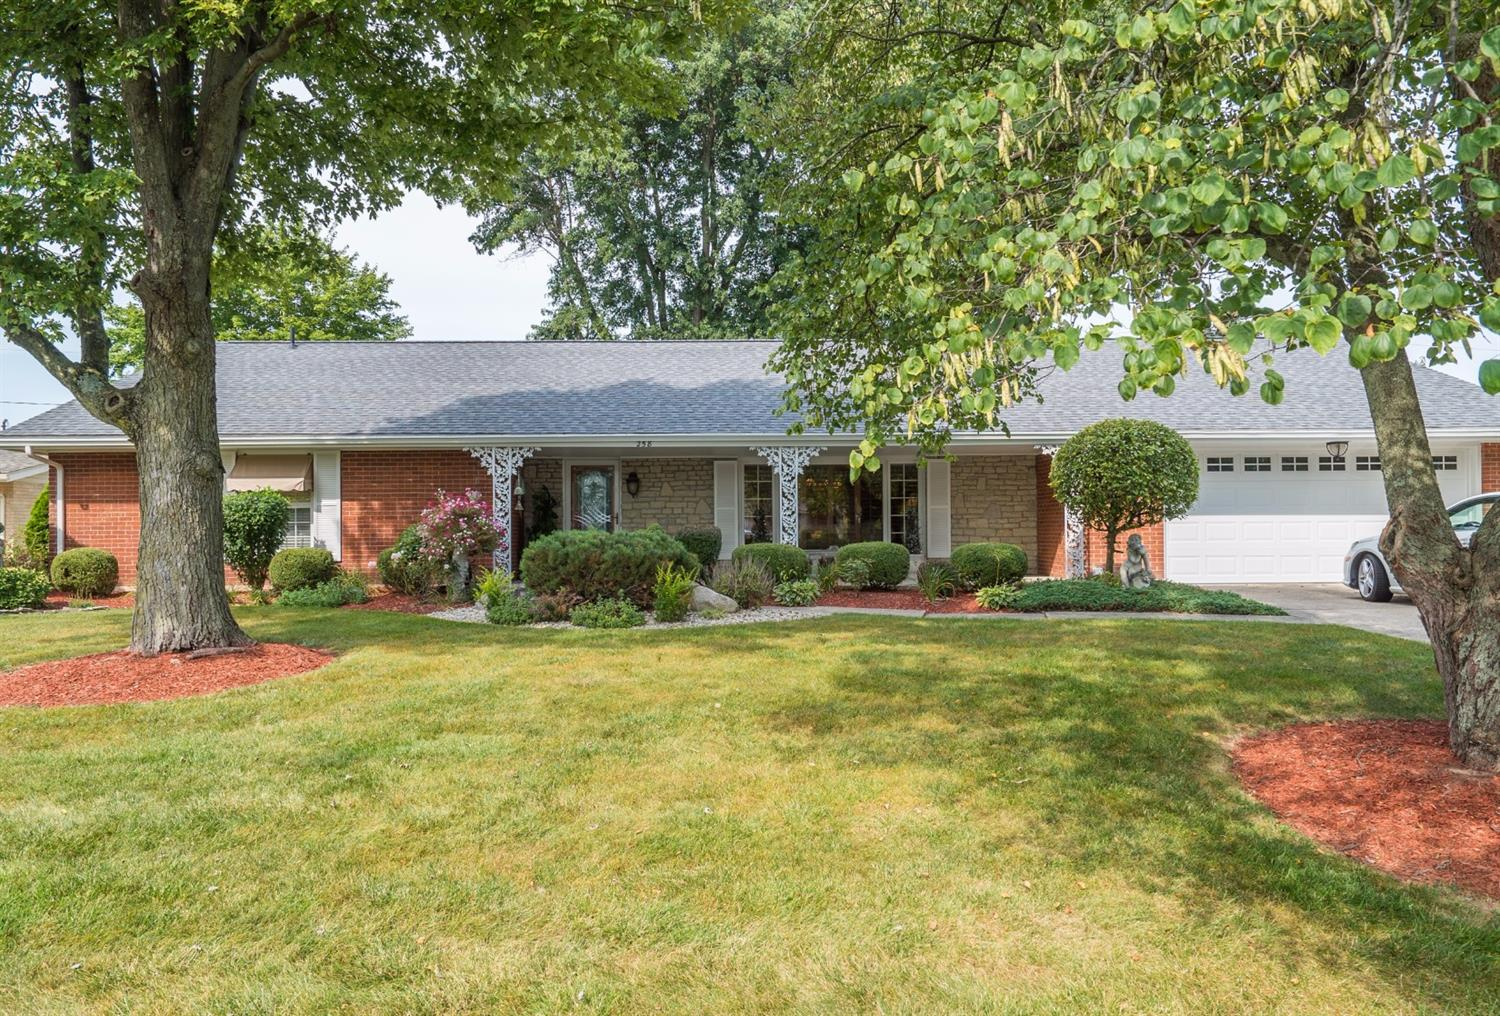 258 Hickory Dr Darke County, OH